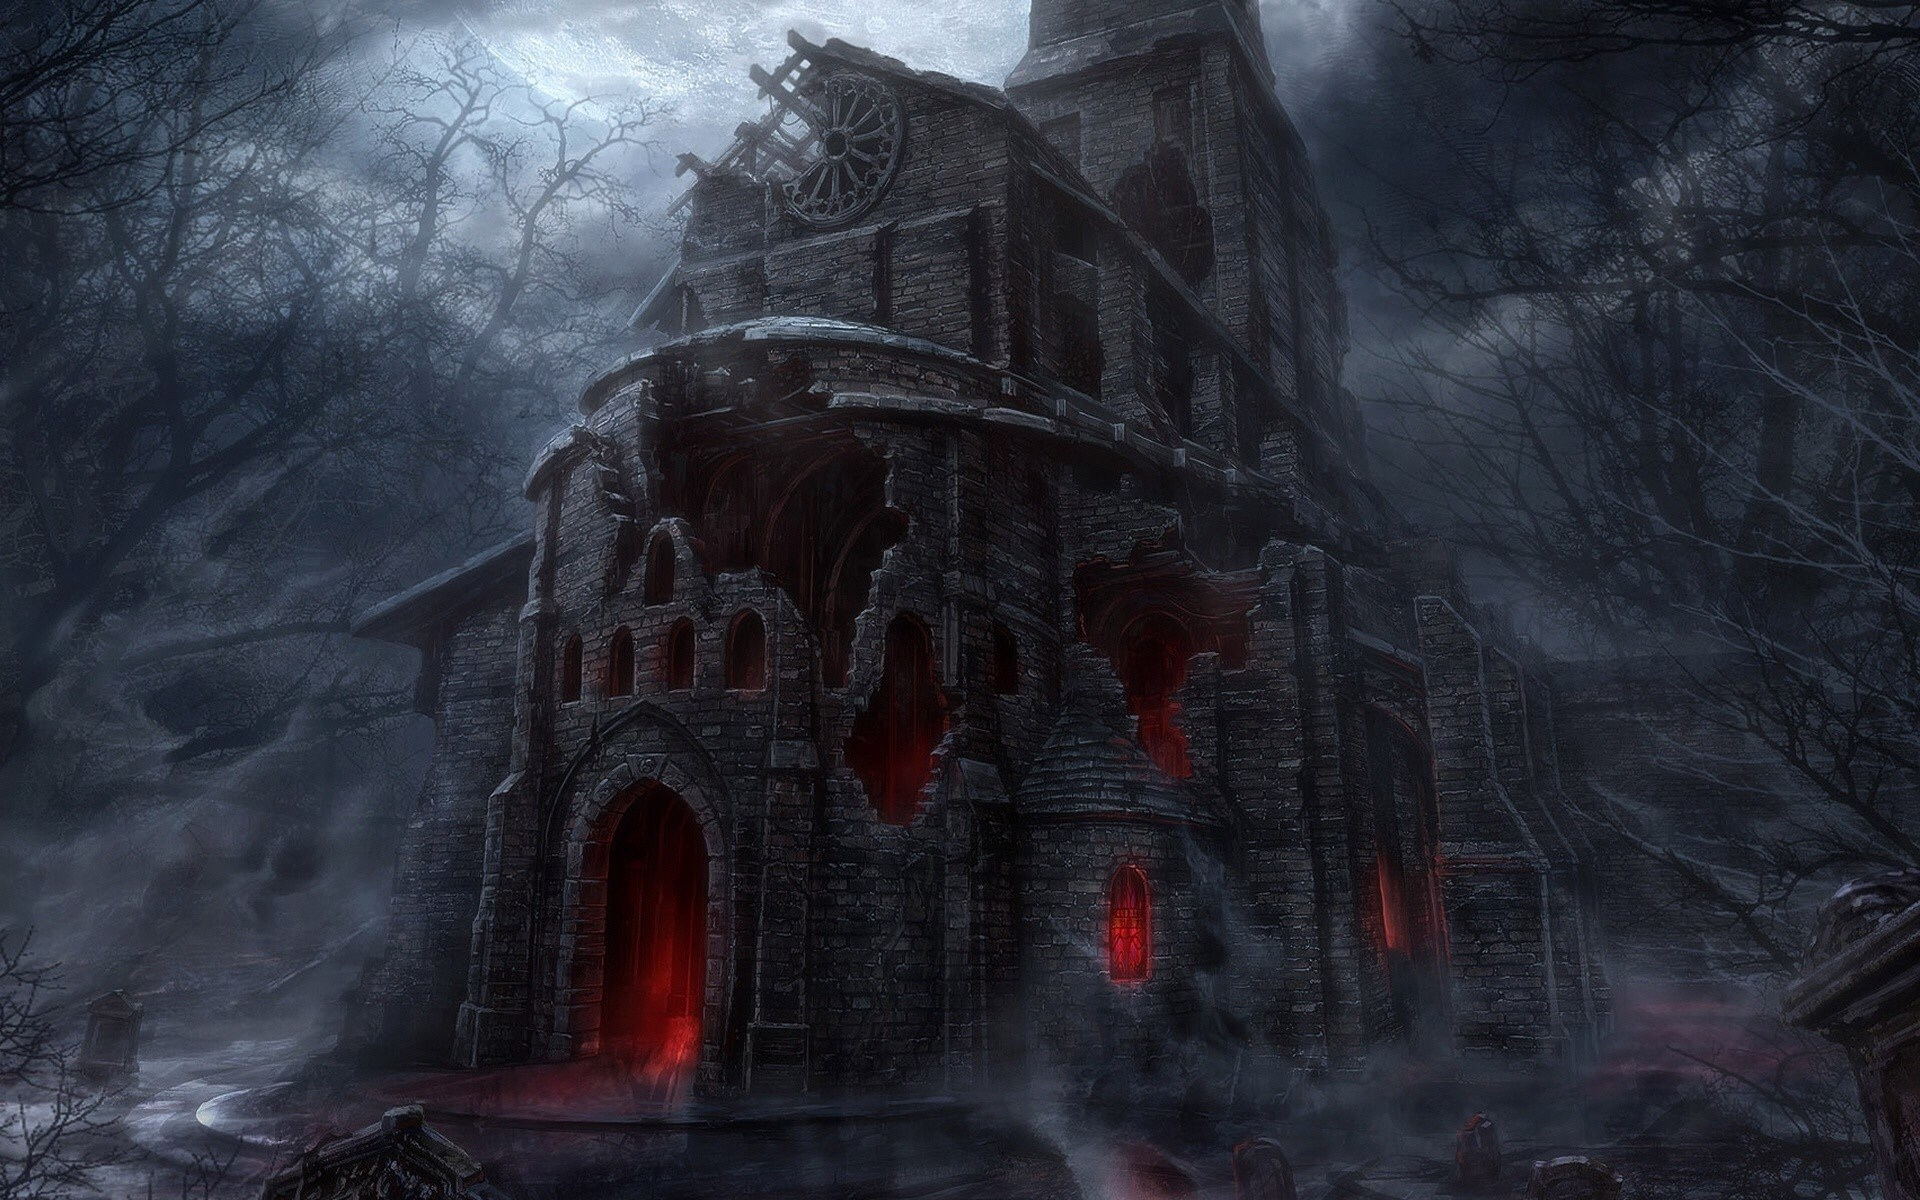 Scary hd wallpapers pictures images - Scary halloween wallpaper ...